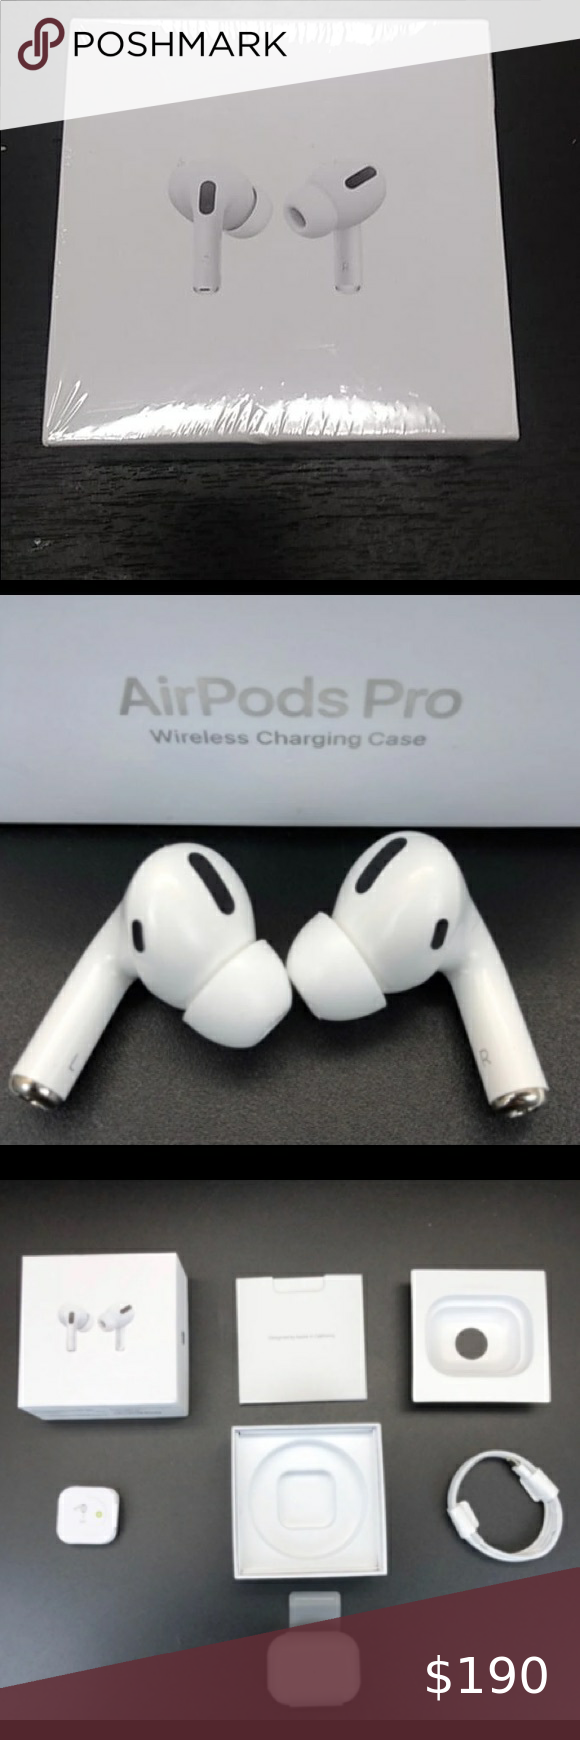 Brand New Airpods Pro Generation 3 Airpods Pro Generation Things To Sell